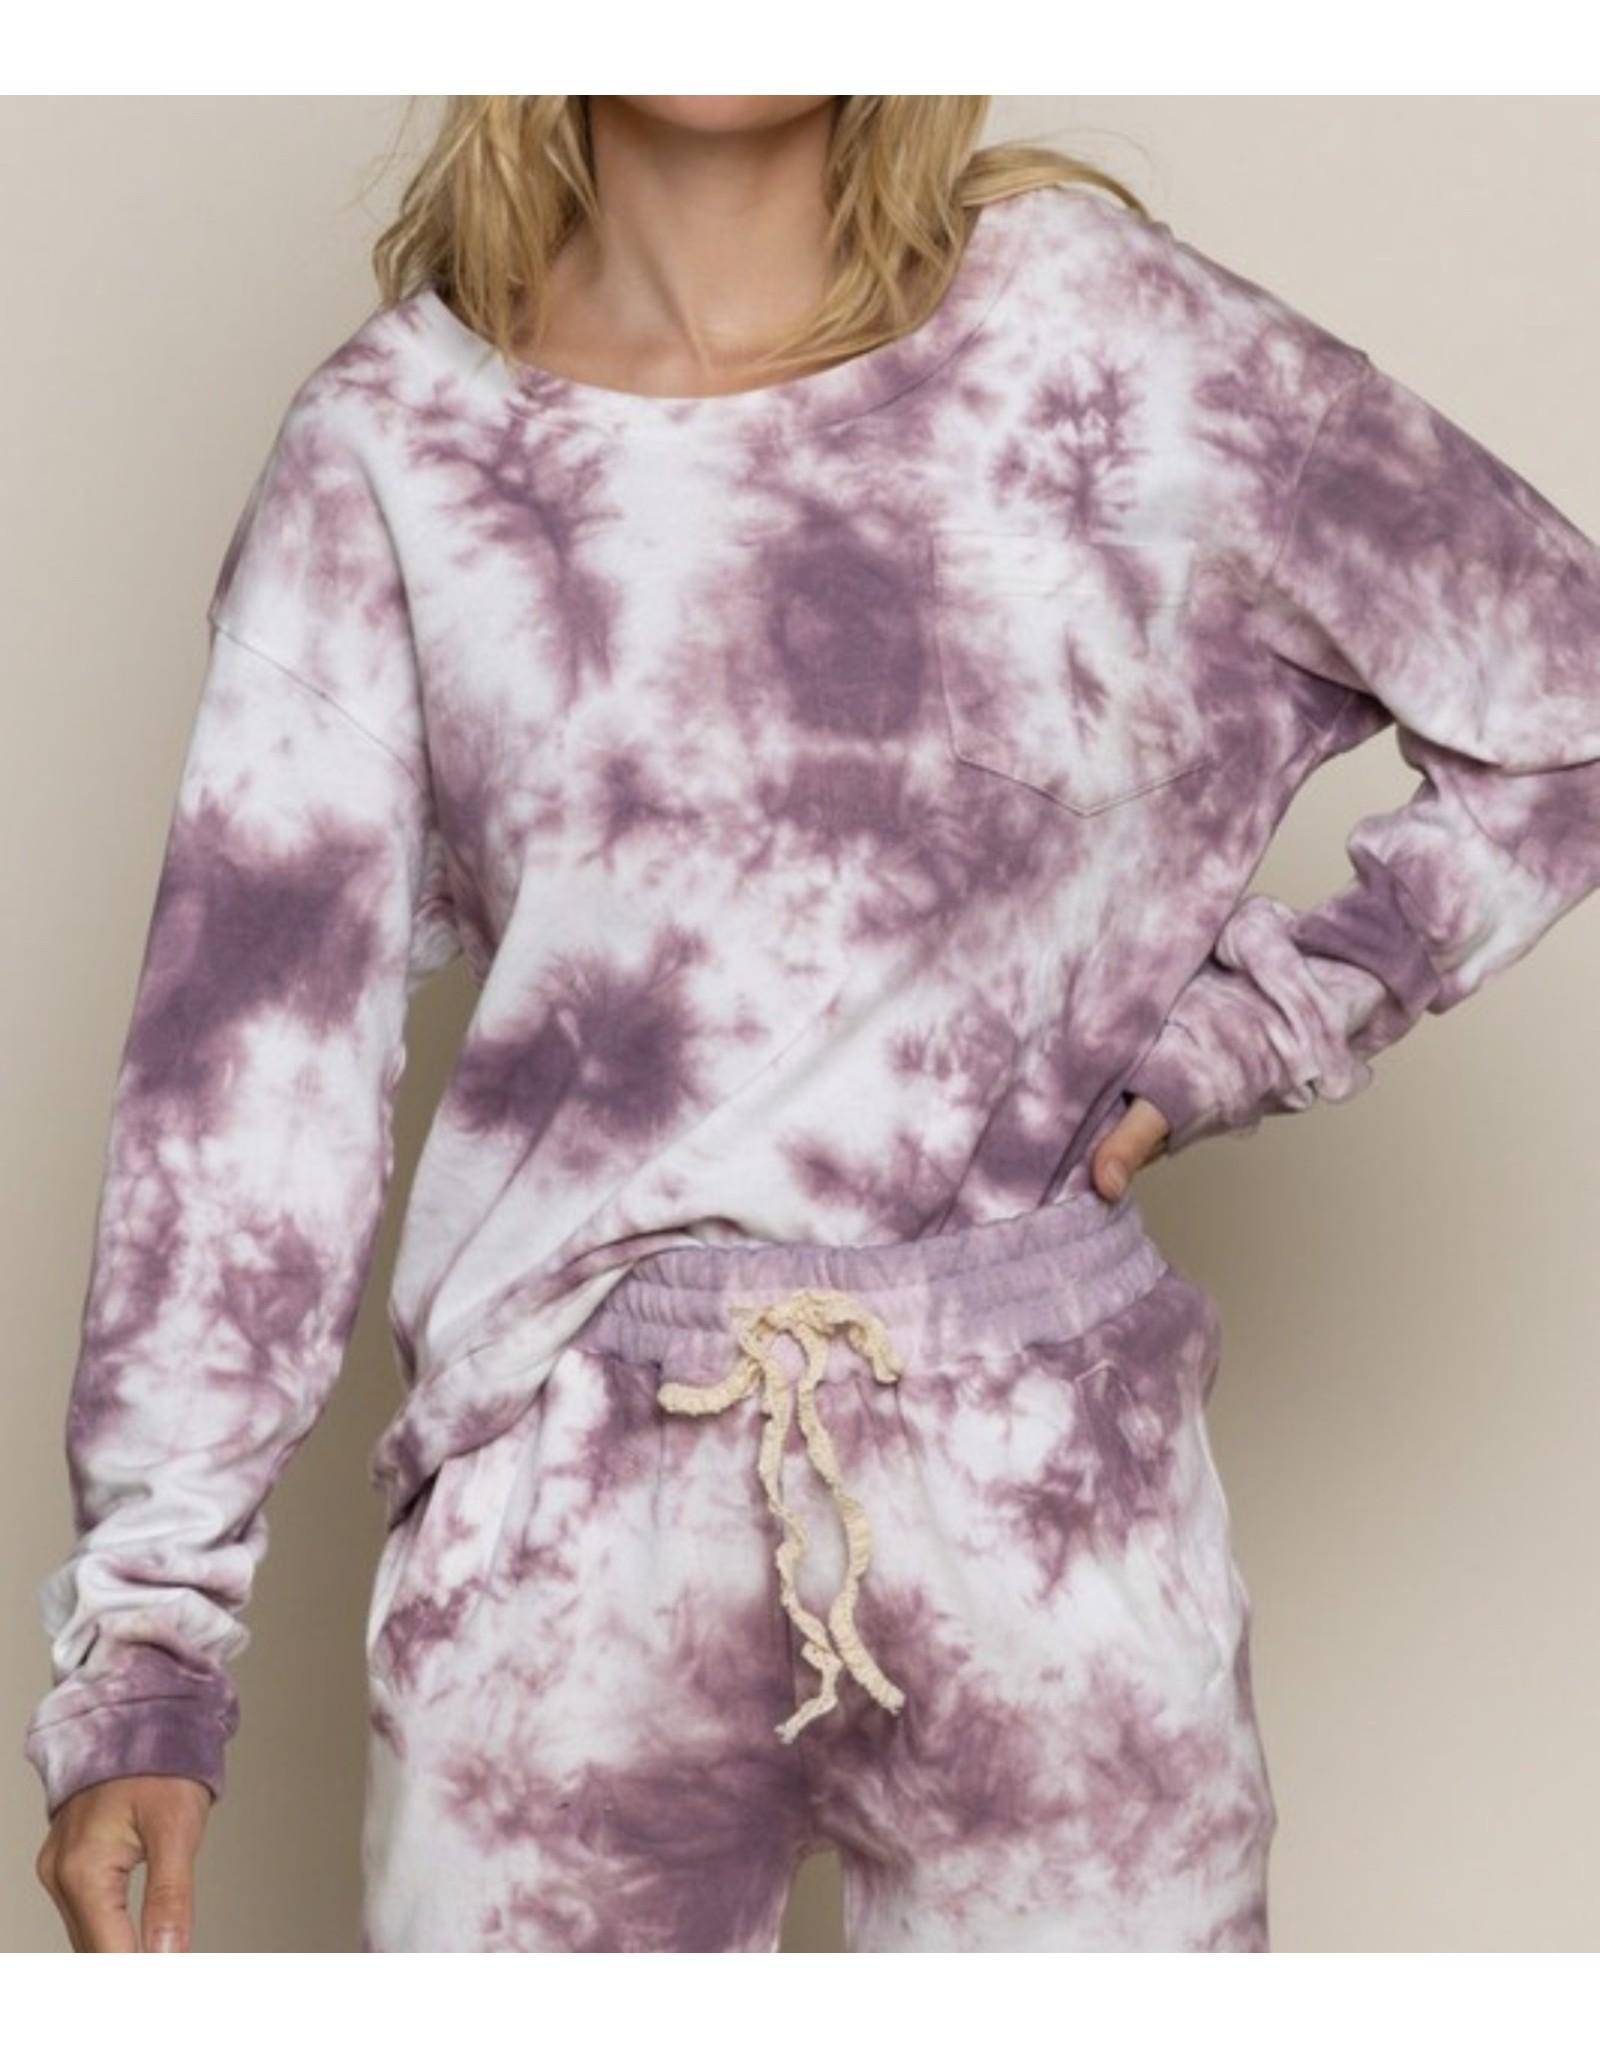 Oversized Tie Dye Top - Berry